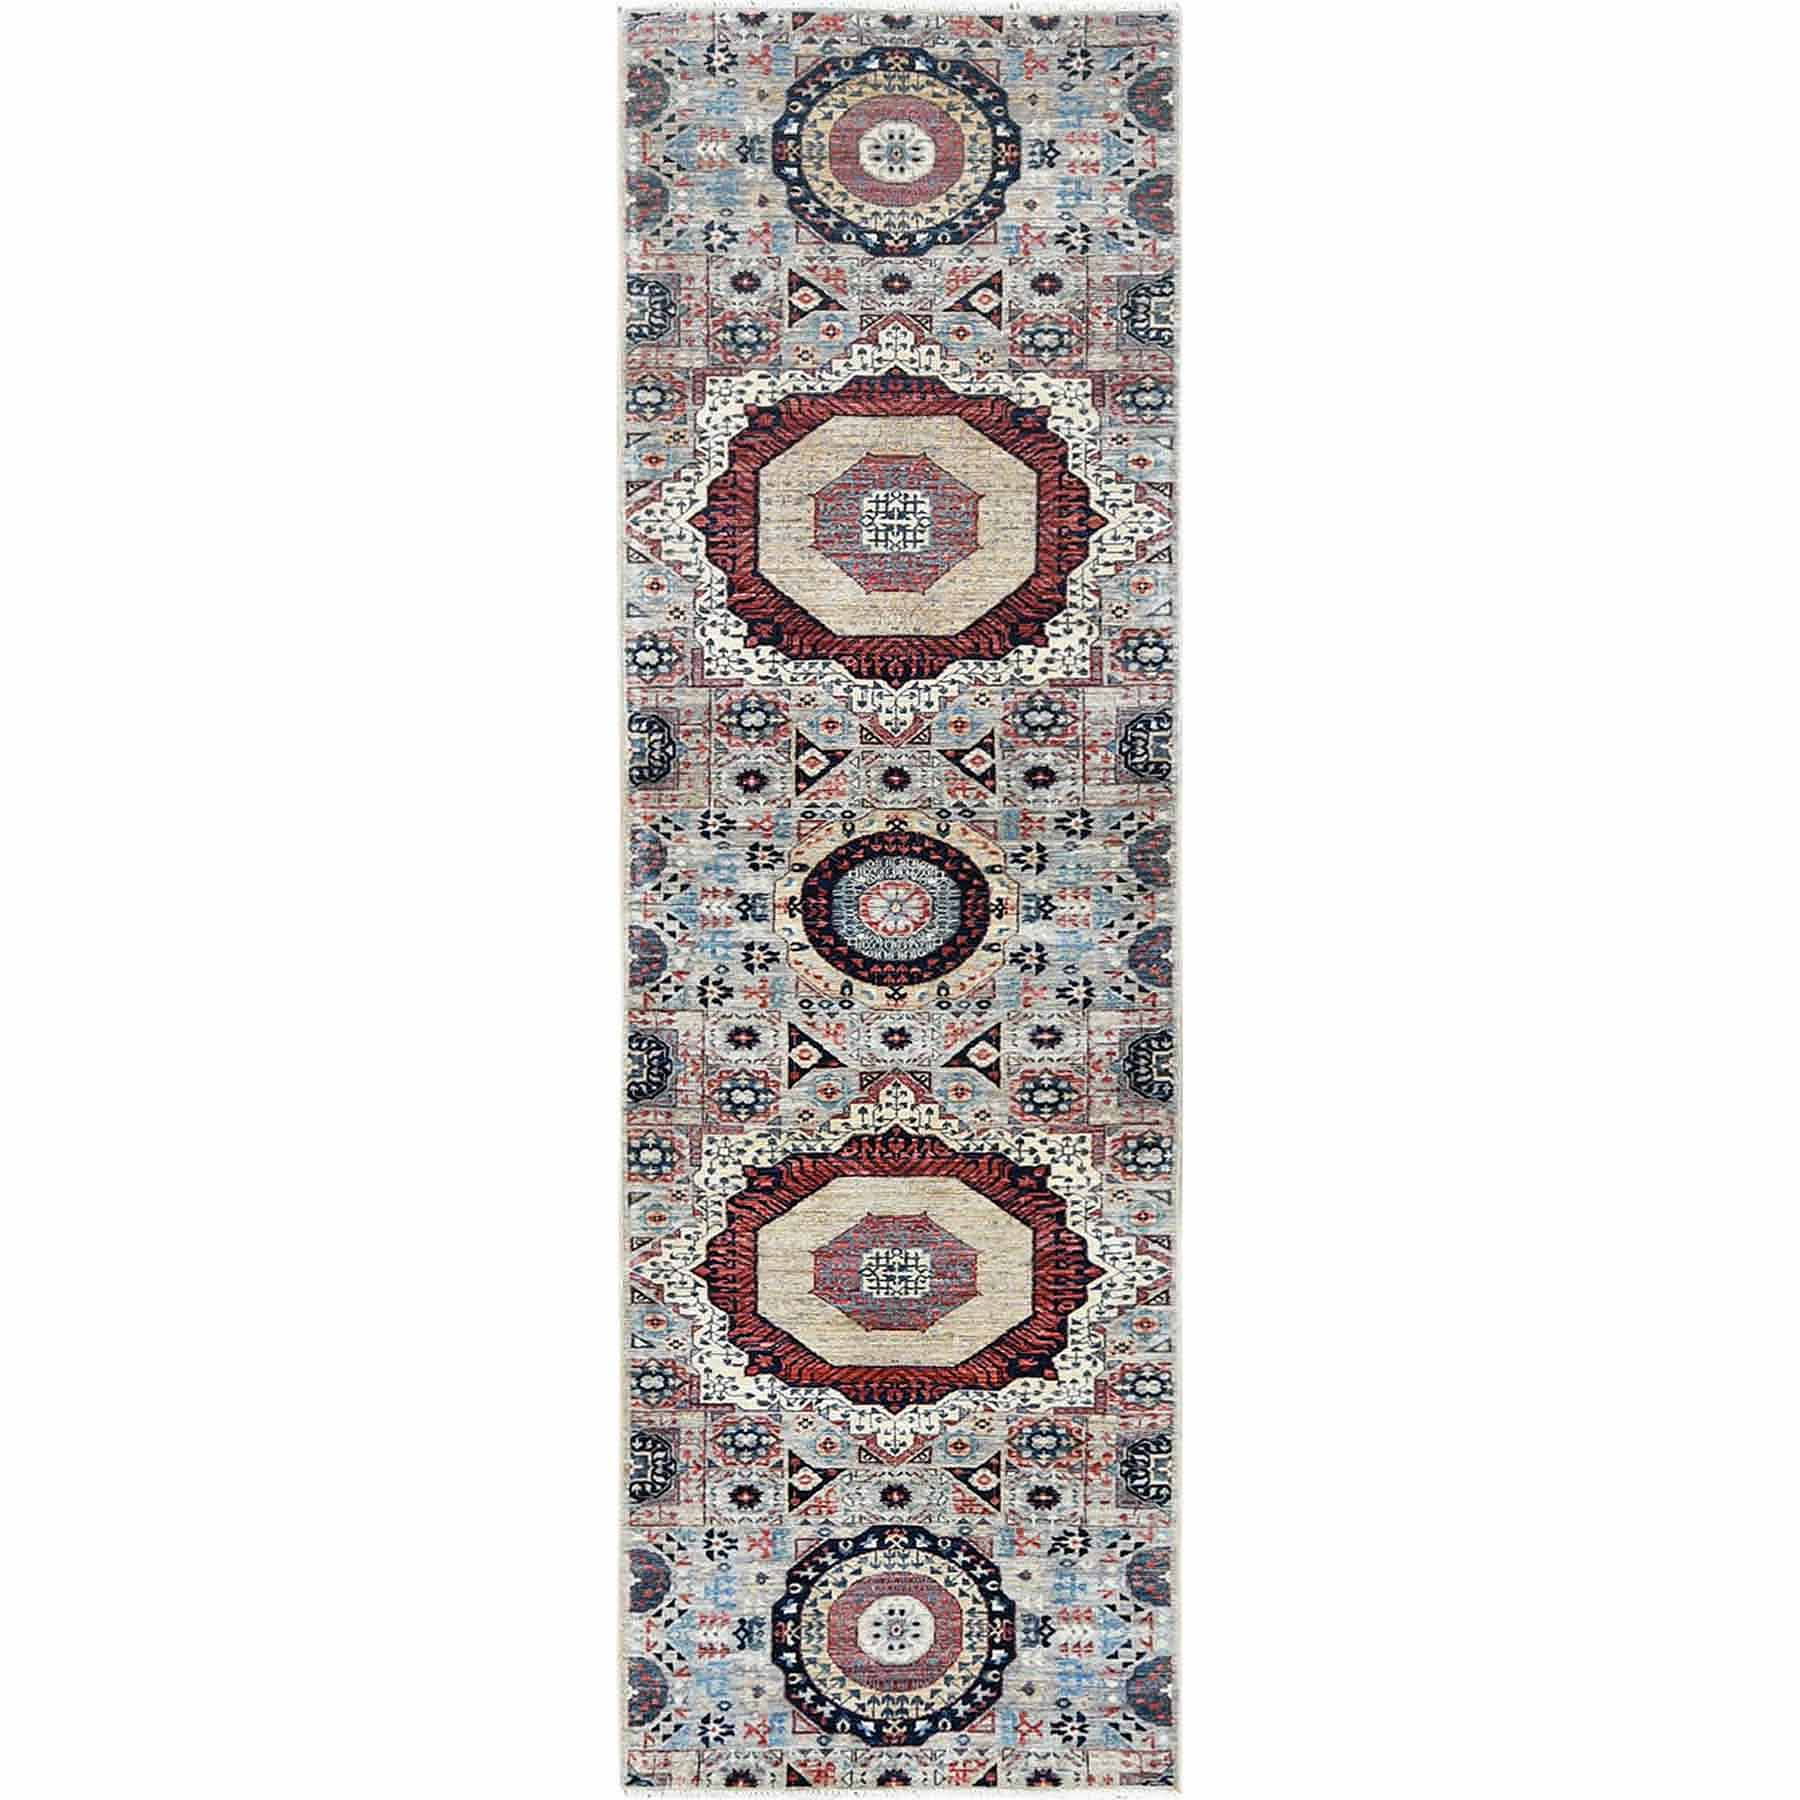 Gray Super Fine Peshawar Mamluk Design With Denser Weave Shiny Wool Even Pile Hand Knotted Runner Oriental